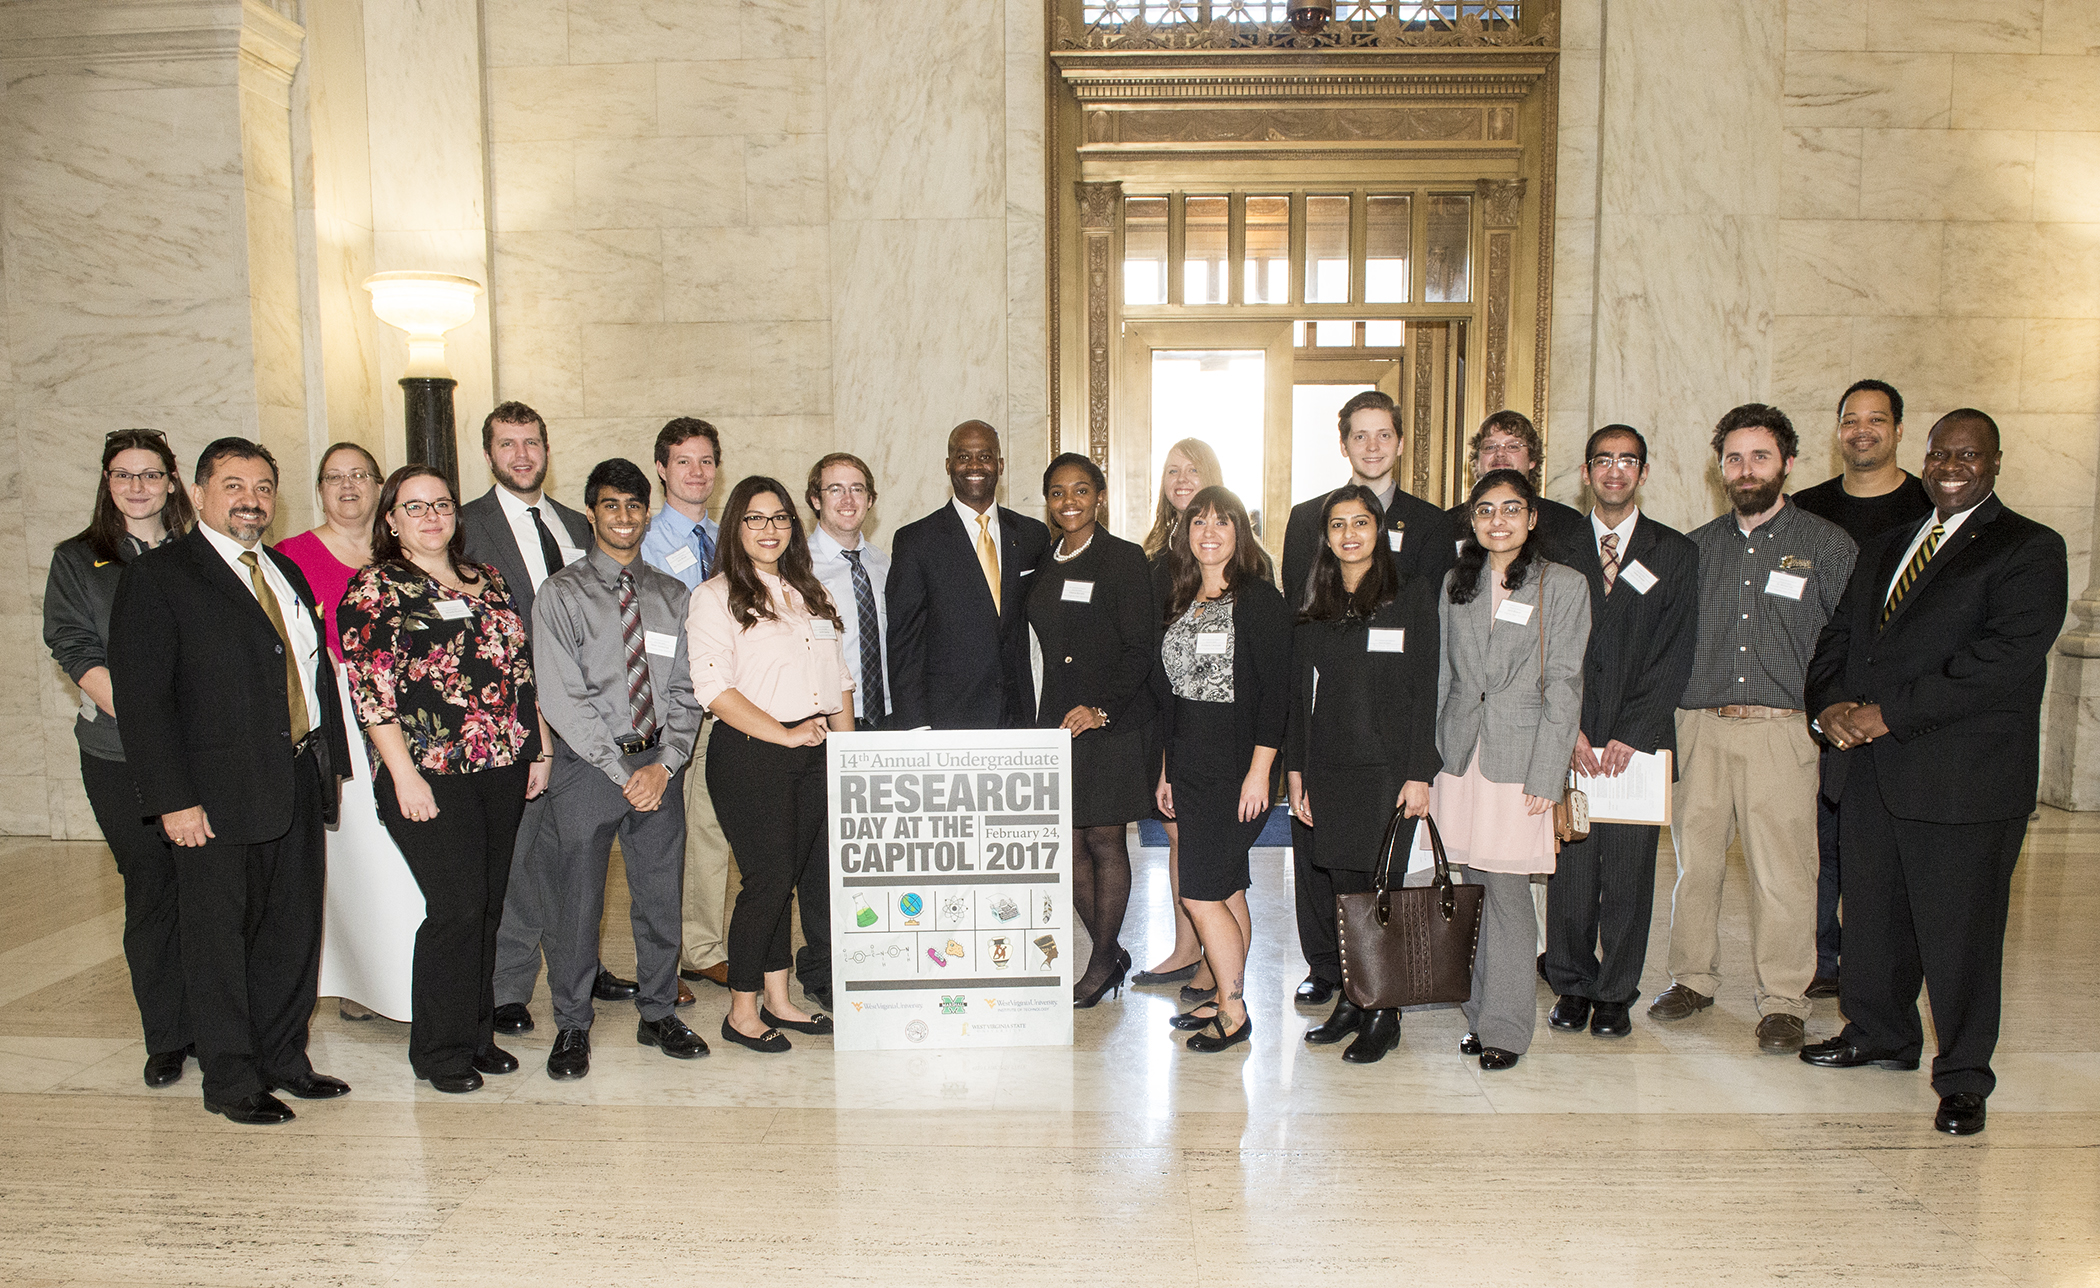 The 14th Annual Undergraduate Research Day at the State Capitol